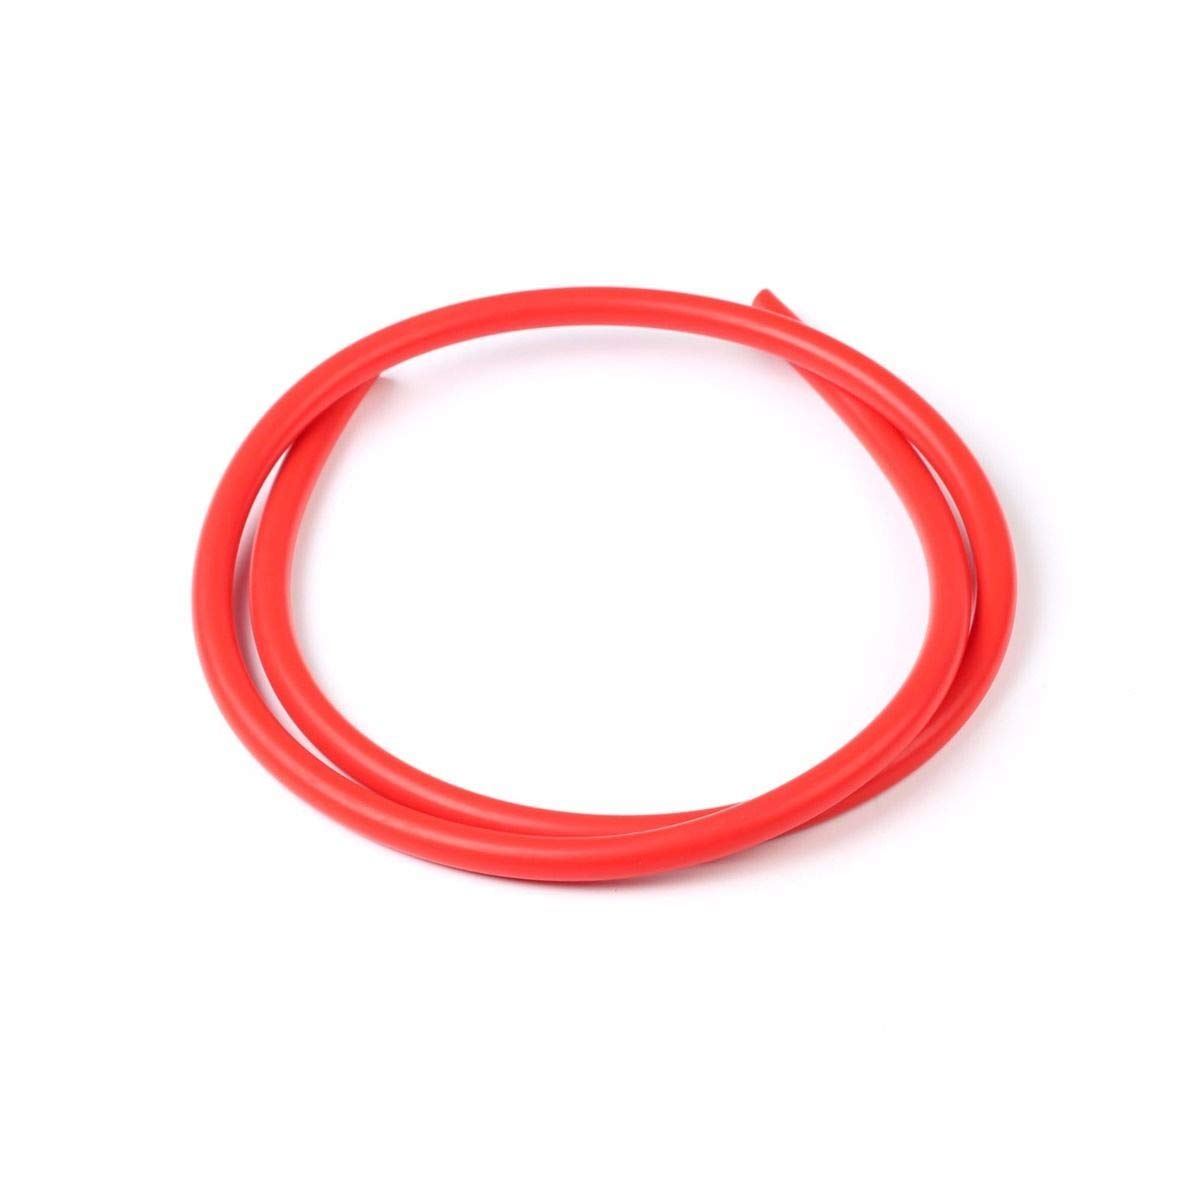 KapOD 4 mm 0.16'' Vacuum Silicone Hose Racing line Pipe Tube 1 Foot Red 5/32'' ID by KapOD (Image #1)